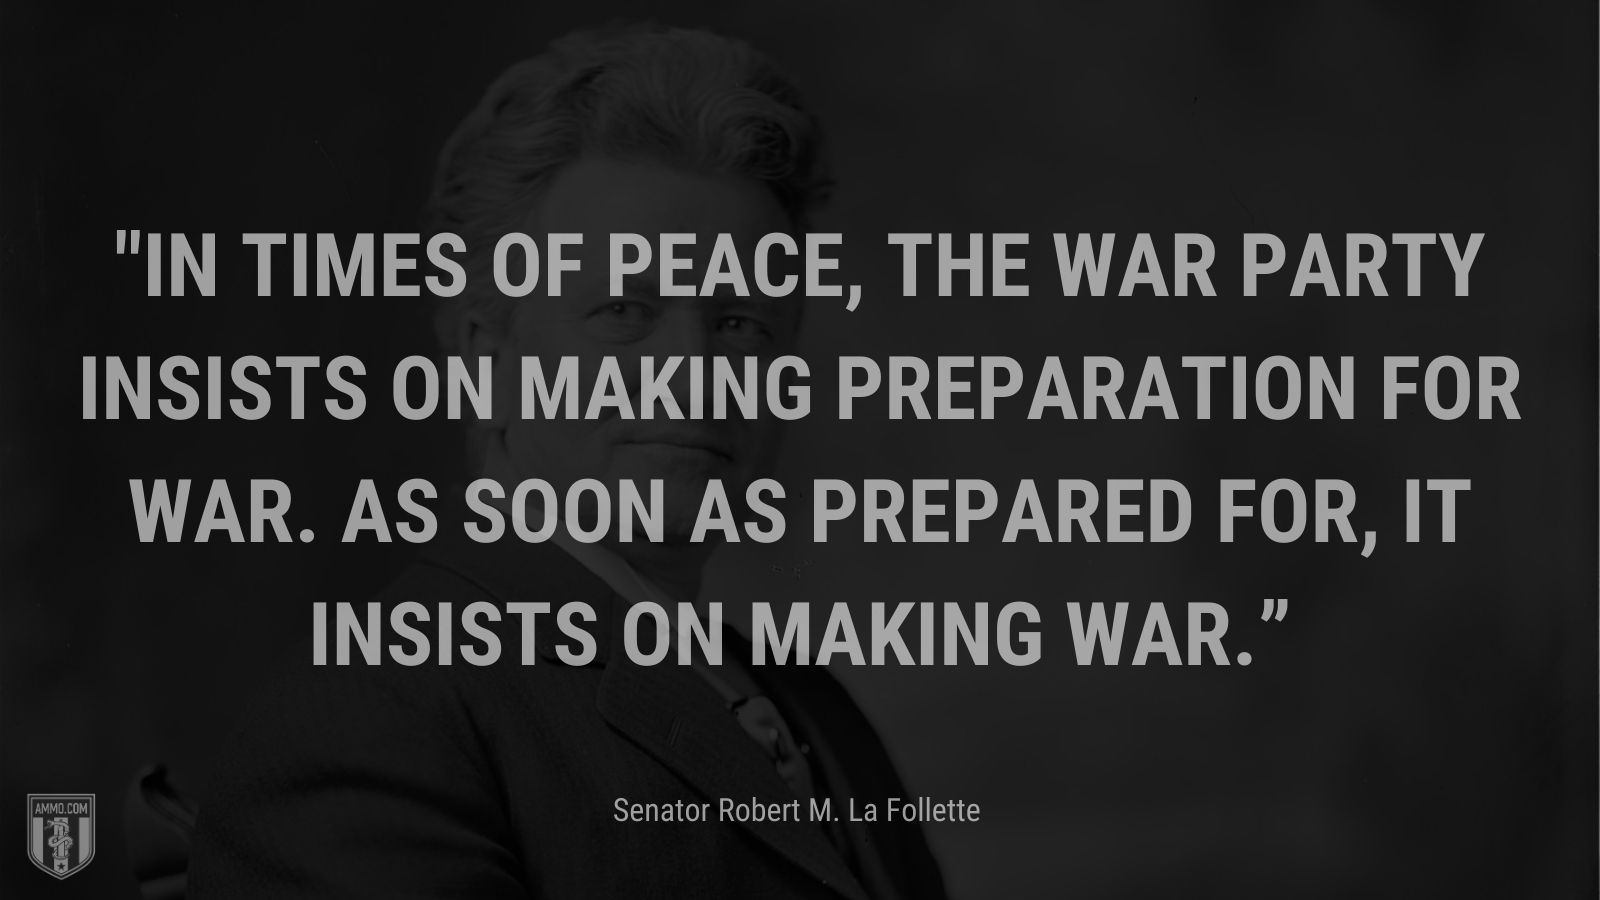 """""""In times of peace, the war party insists on making preparation for war. As soon as prepared for, it insists on making war."""" - Senator Robert M. La Follette"""